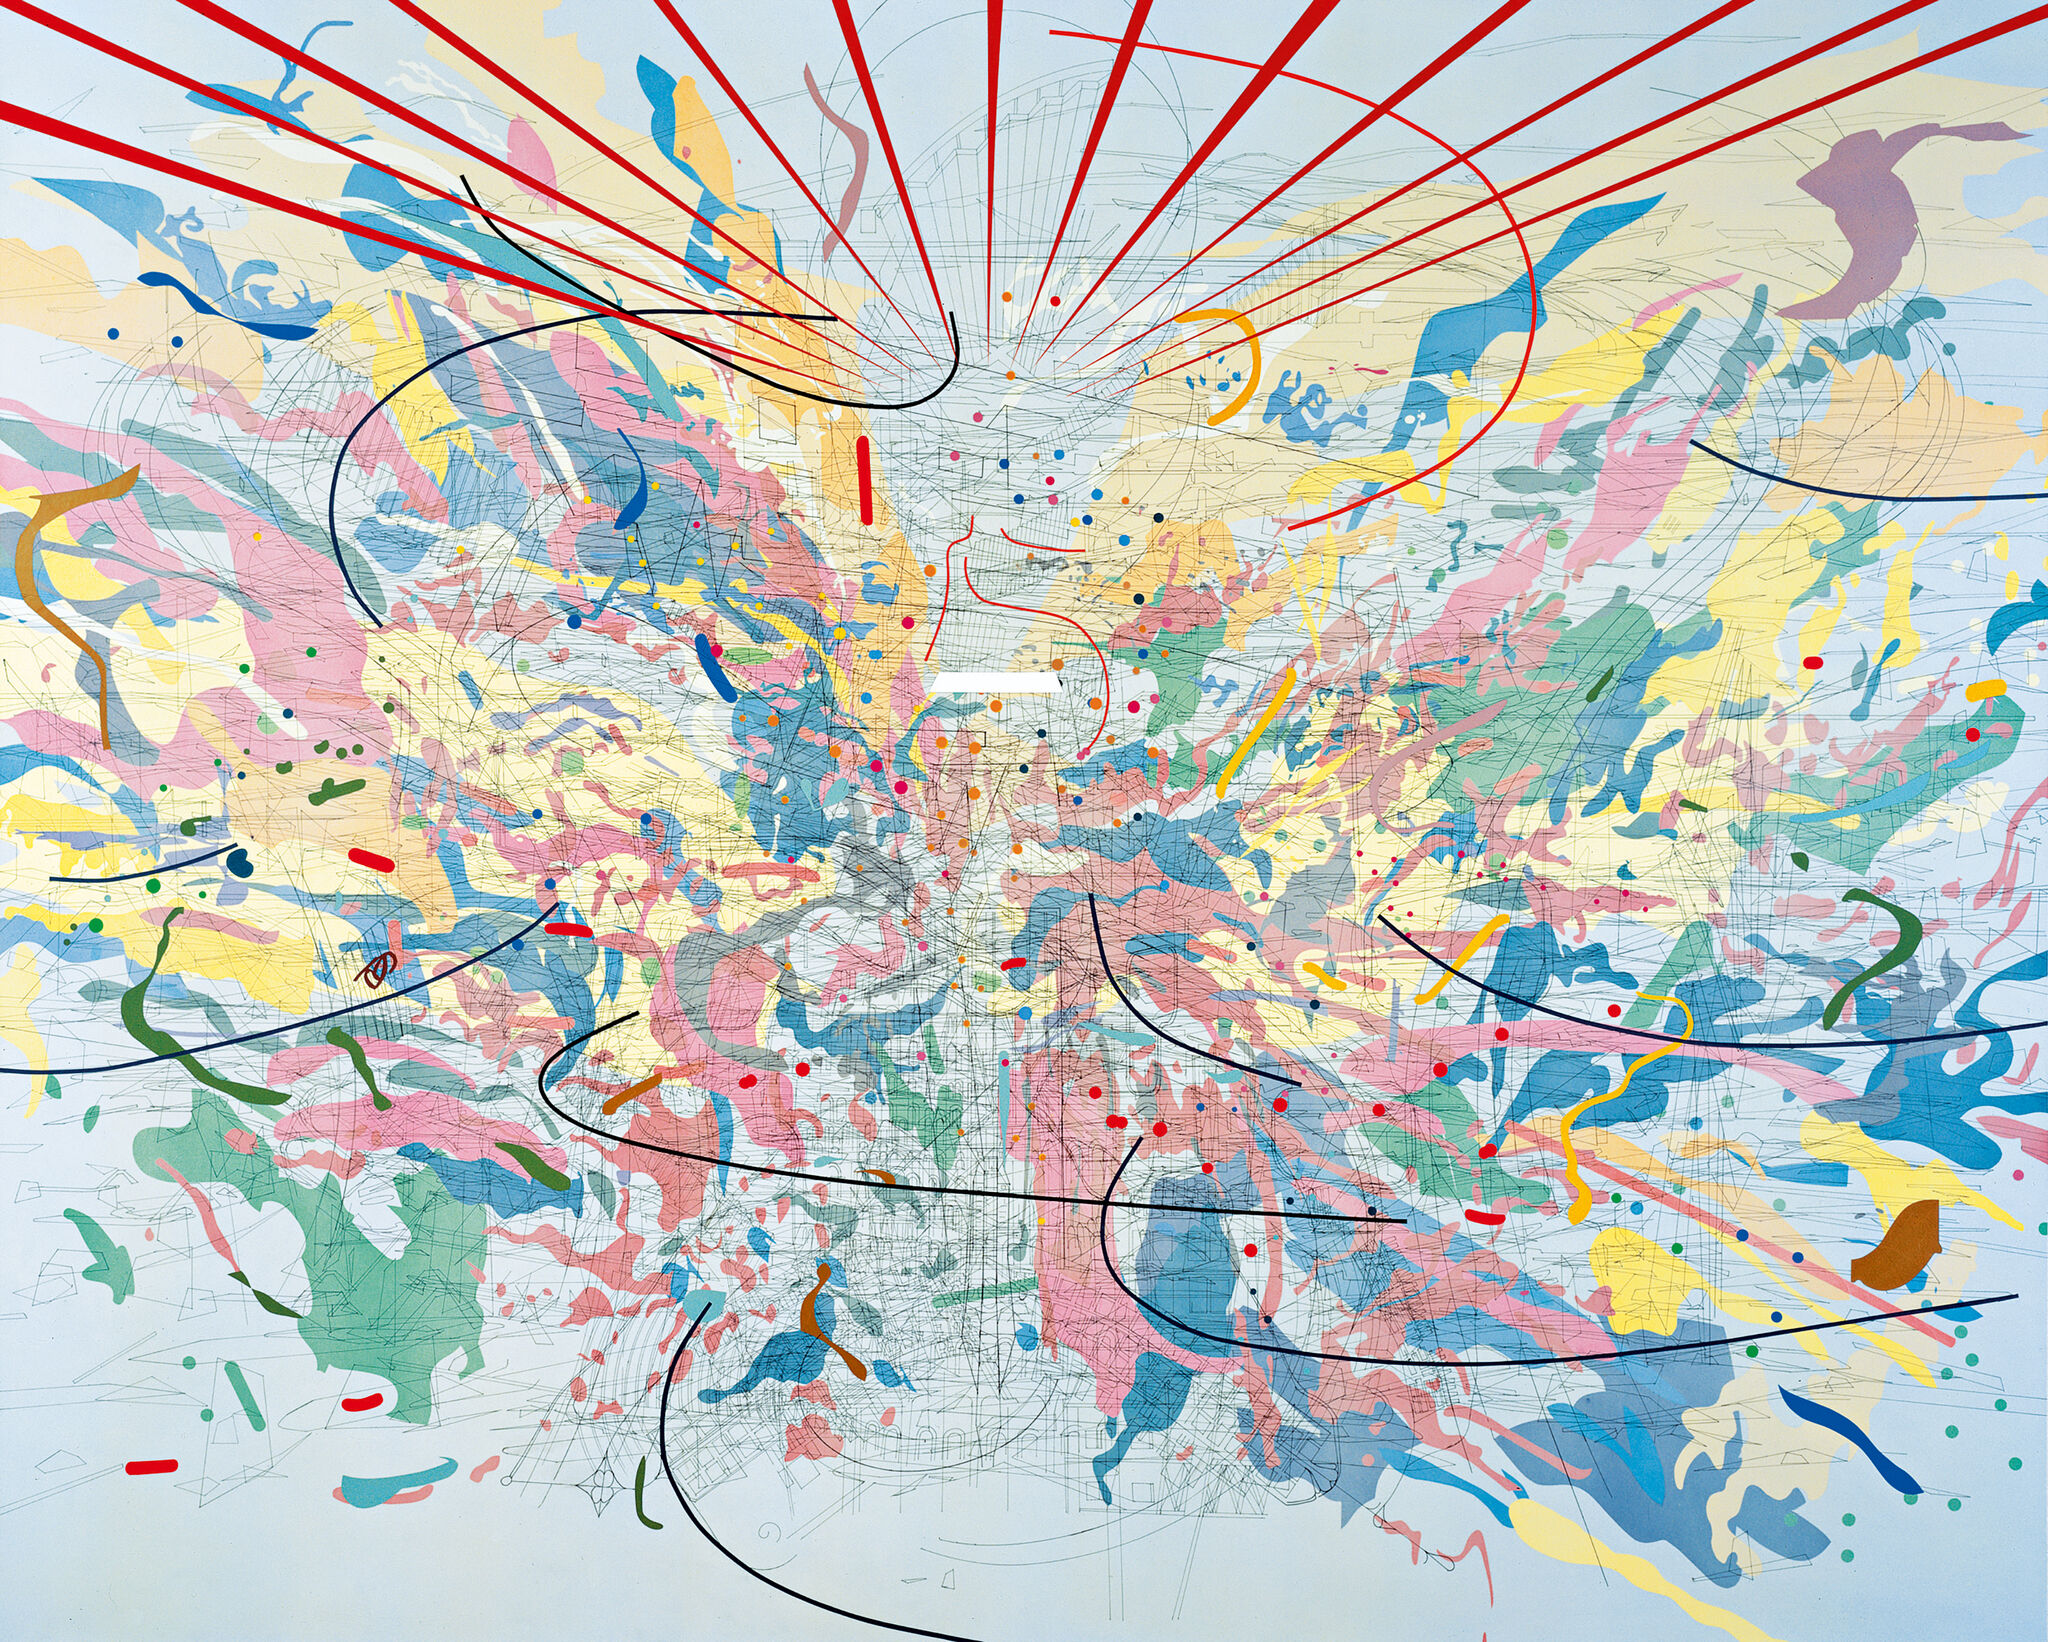 An image of Julie Mehretu's Looking Back to a Bright New Future, which is comprised of multi-colored ink and acrylic on canvas.